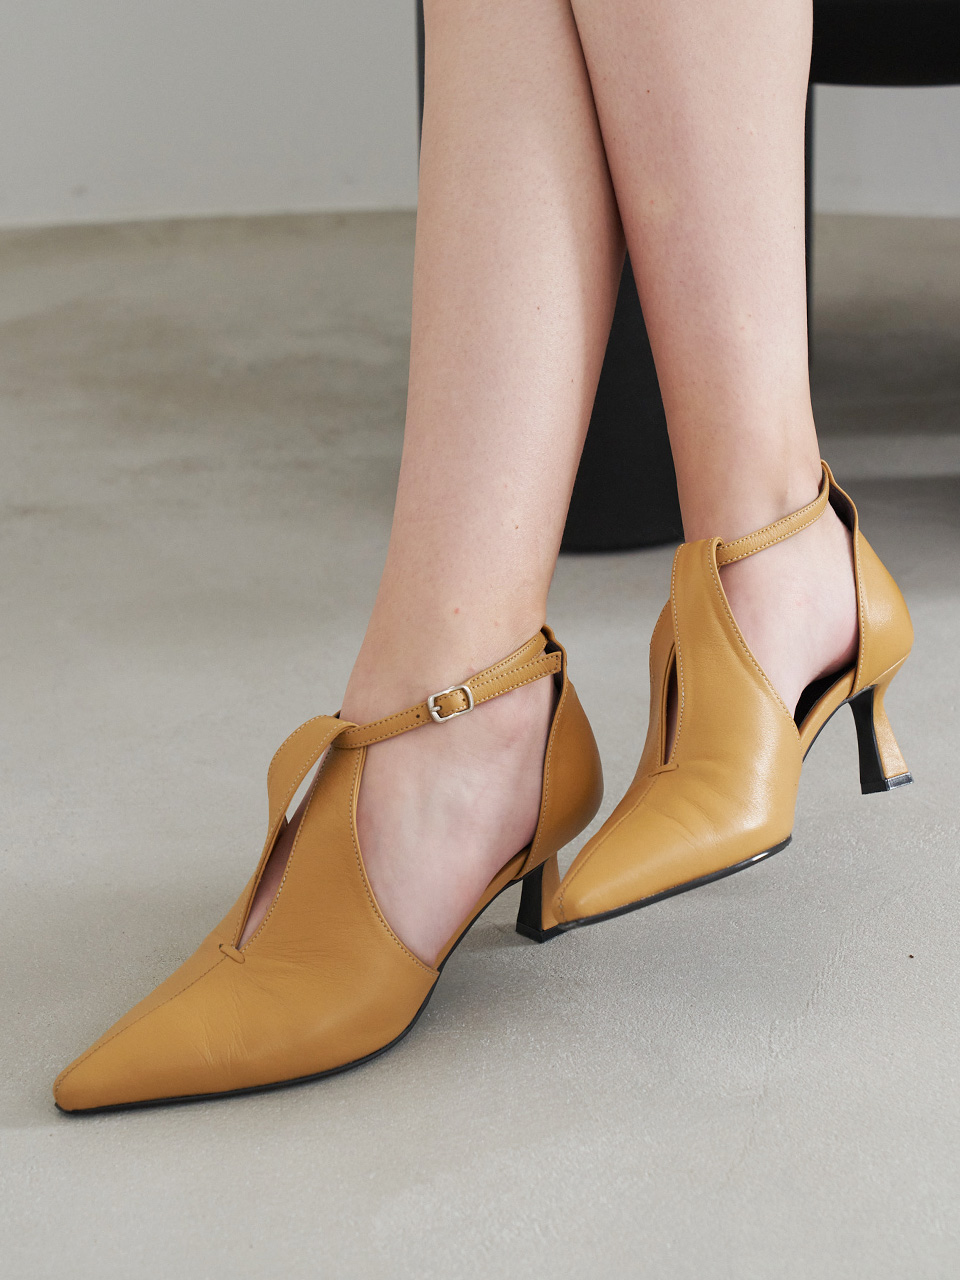 Mrc073 Twist Pumps (Peanut Yellow)